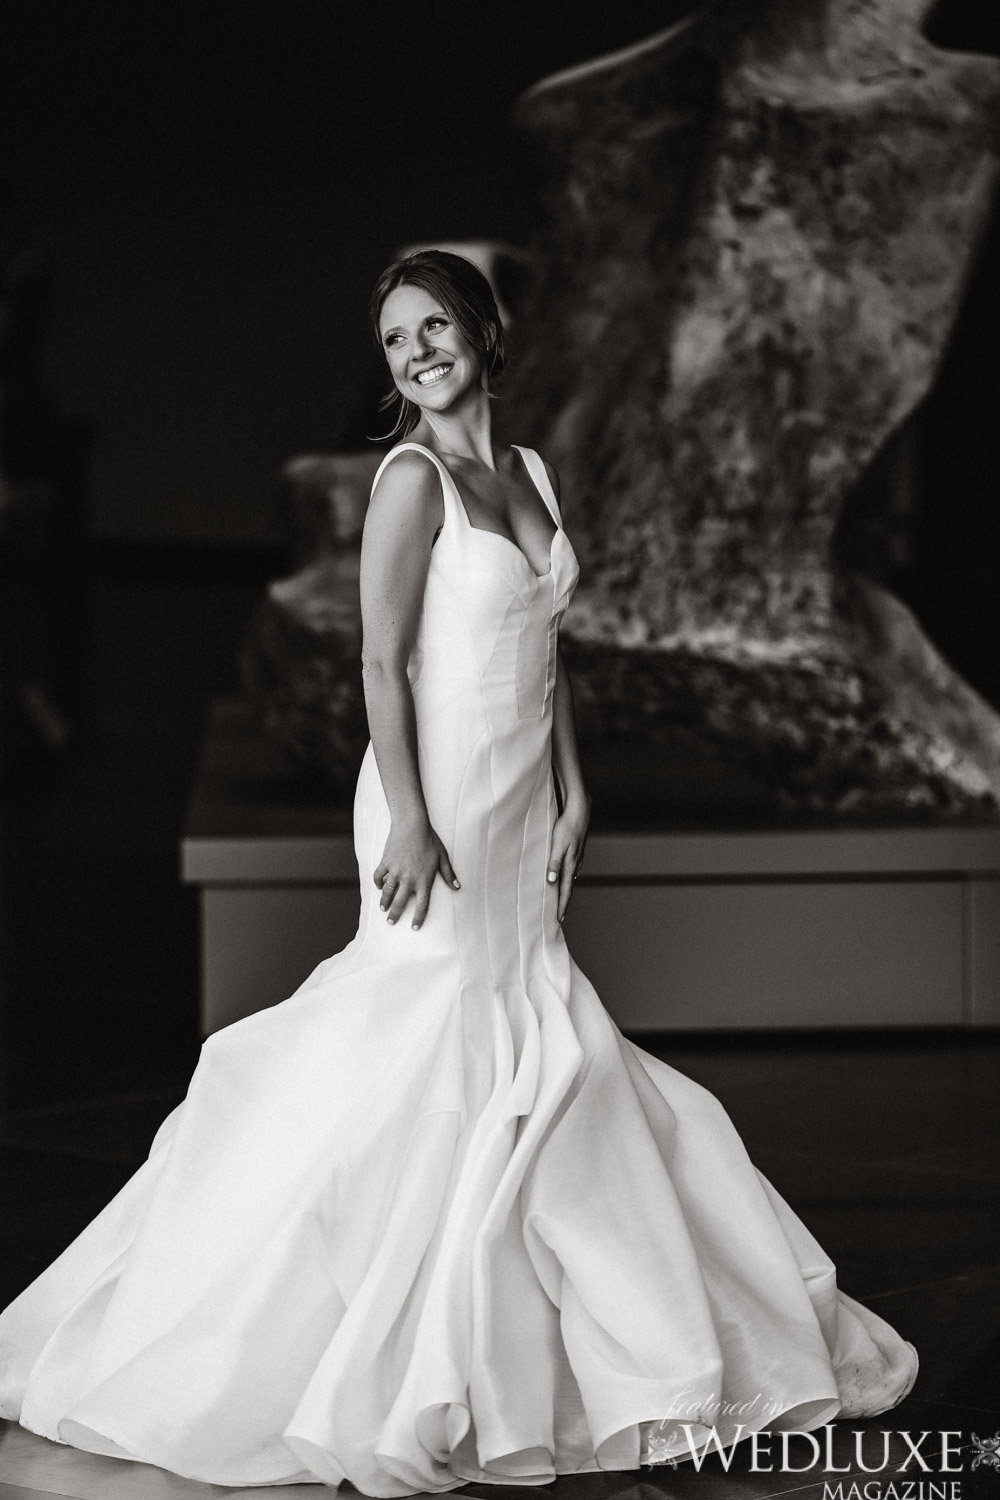 AGO bride photos Peter Lagner/ Kleinfelds wedding dress